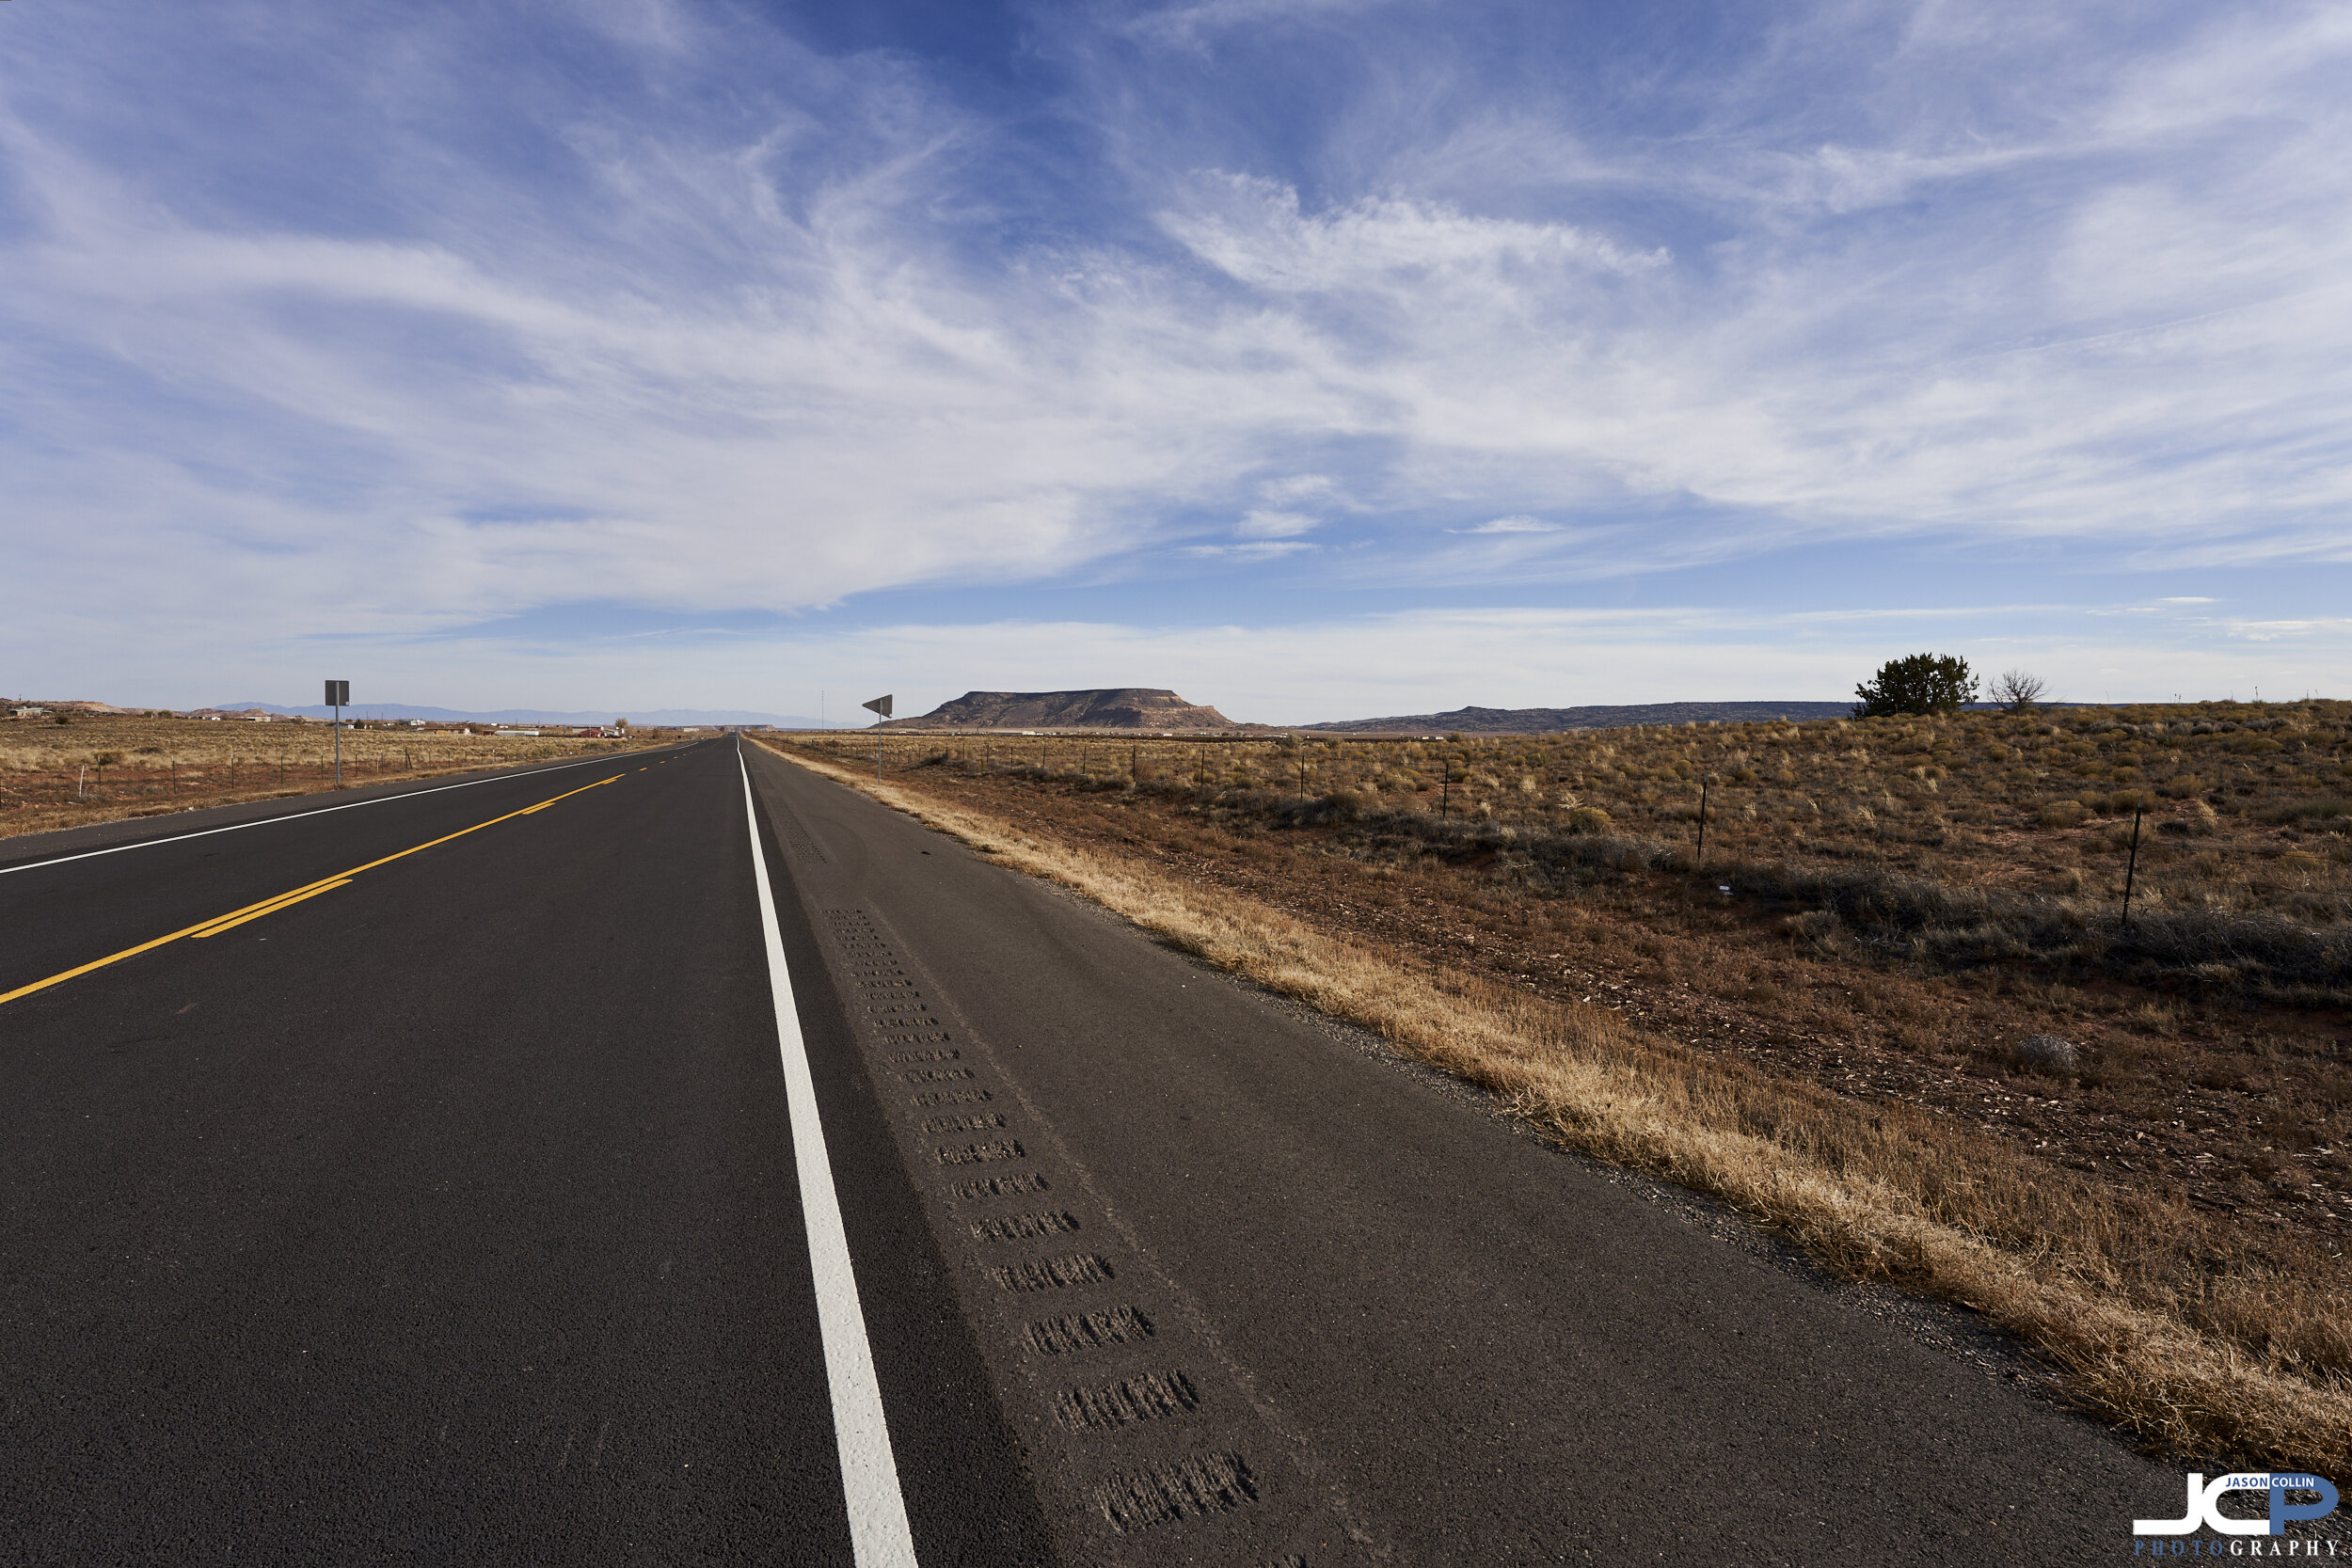 Rural life on the highway in Valencia County, New Mexico